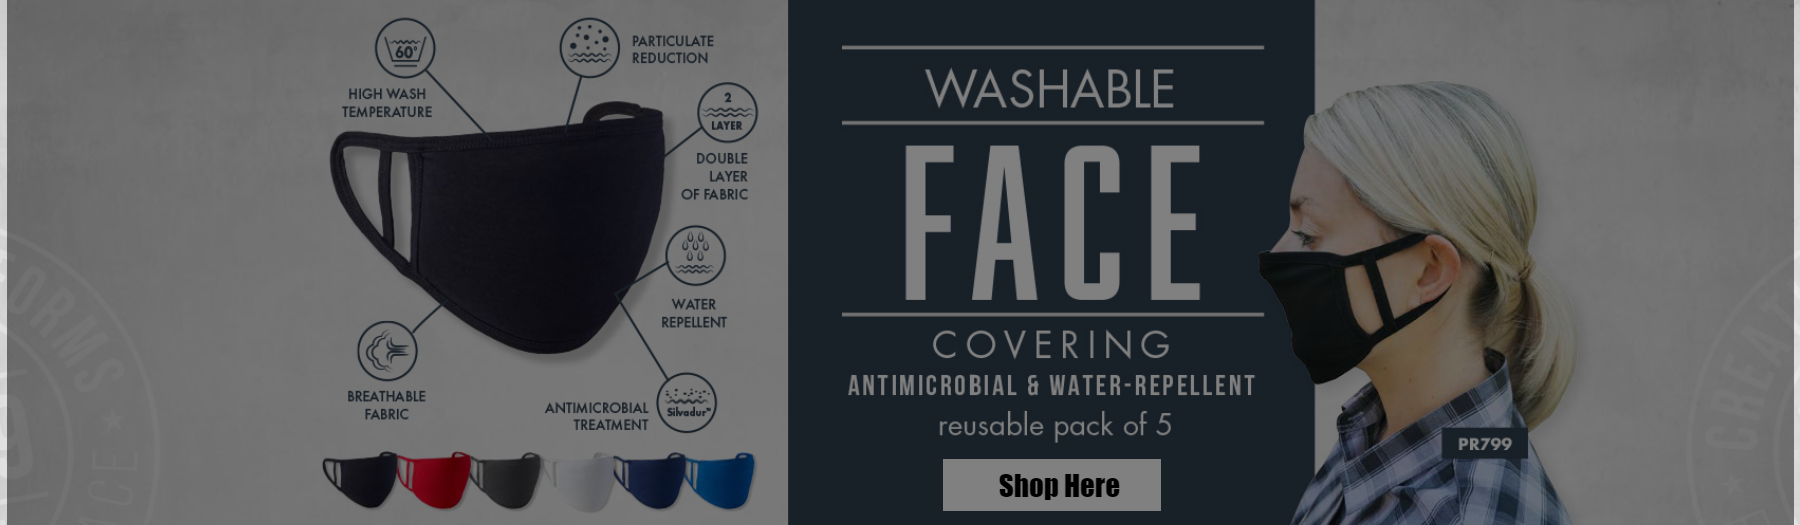 Washable Face Covering